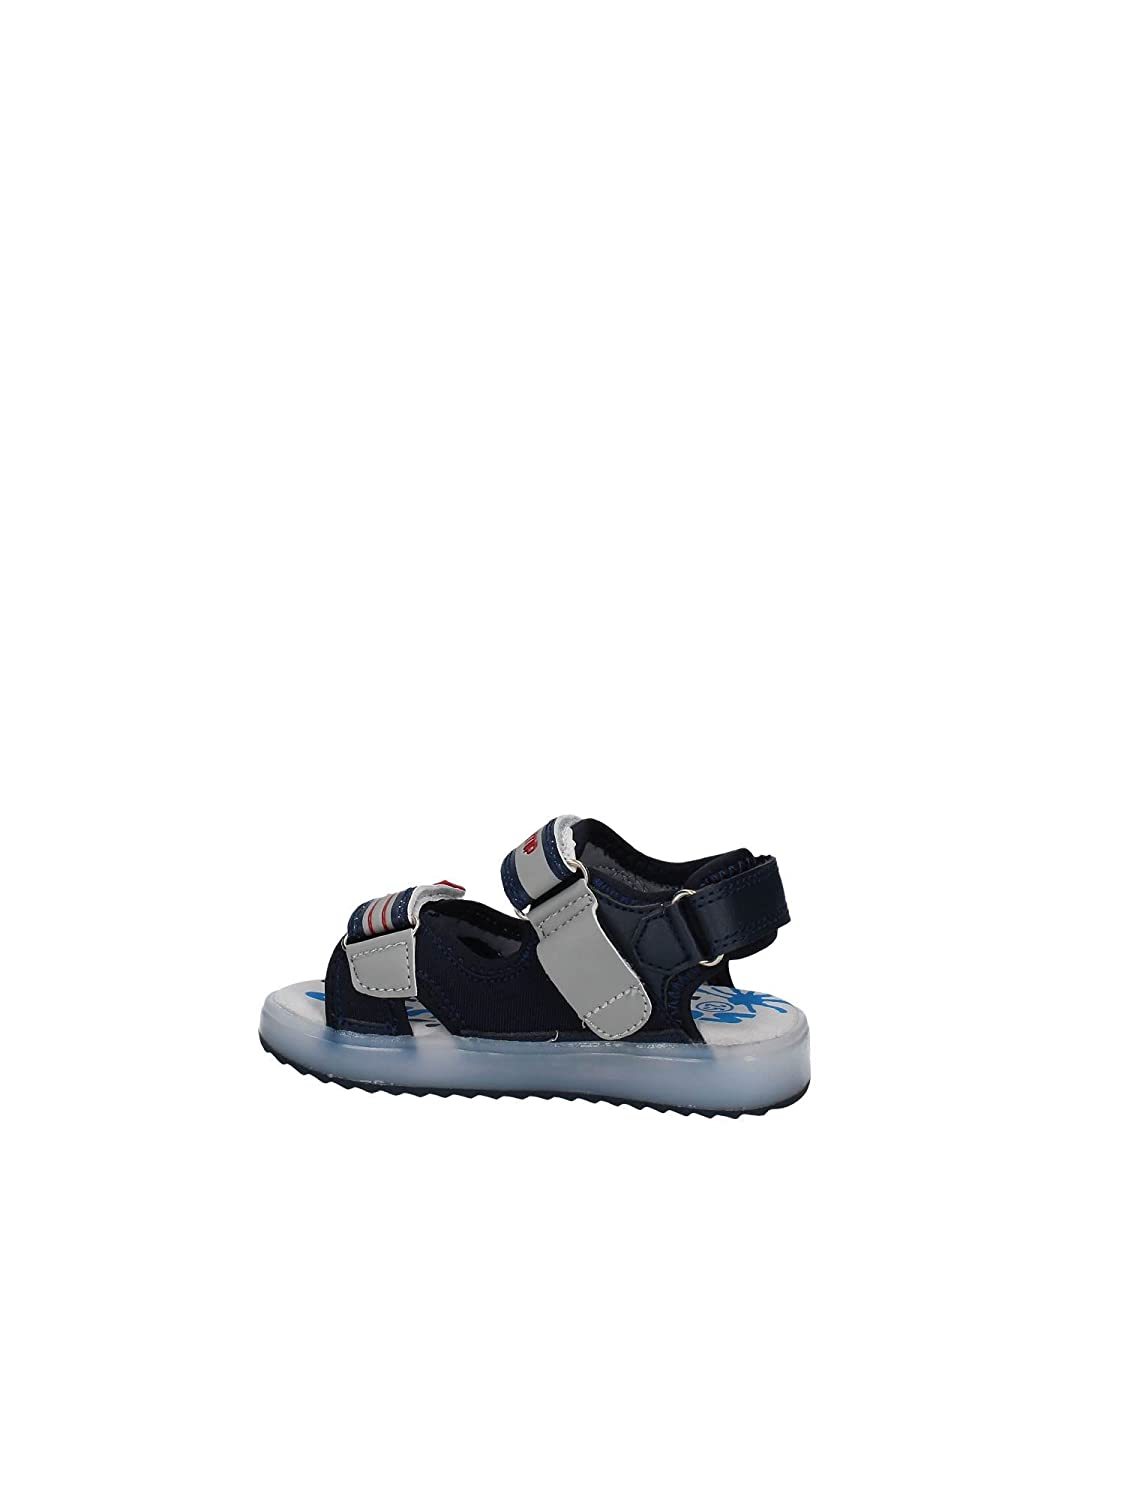 SUPERJUMP COLLEZIONE AMERICA Baby Shoes Sandals Blue SJ2972 Martin